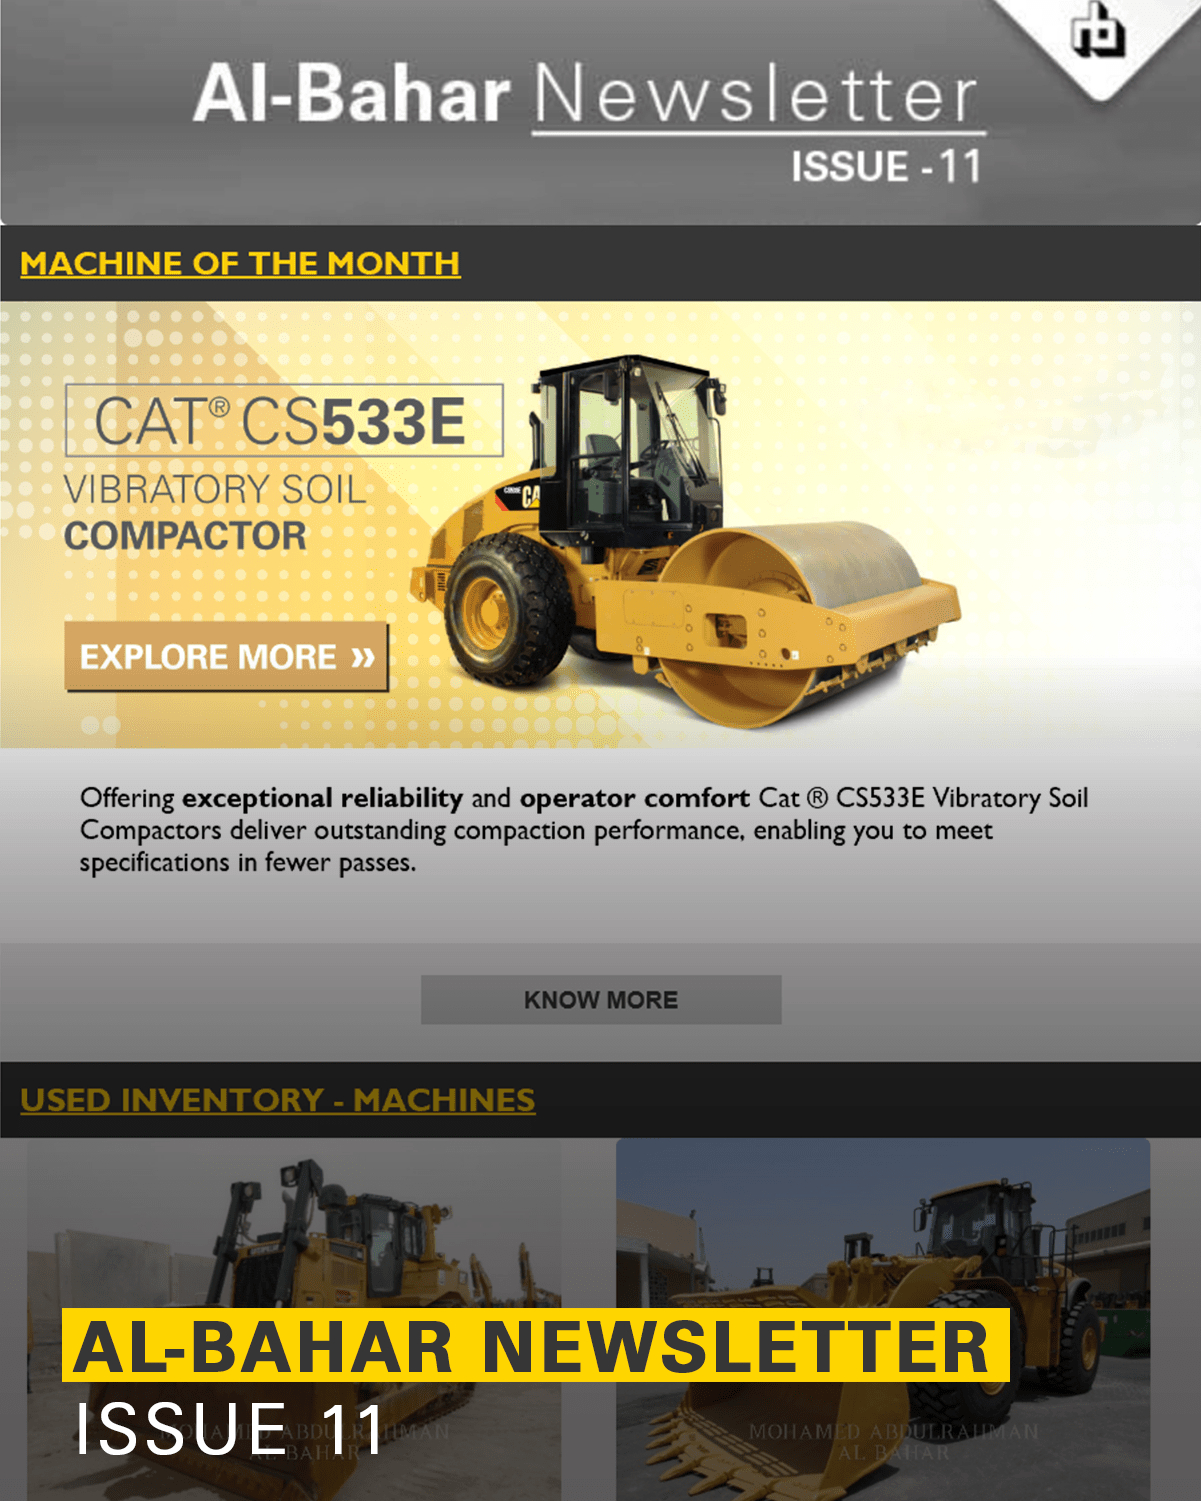 al-bahar-2018-newsletter-issue-11